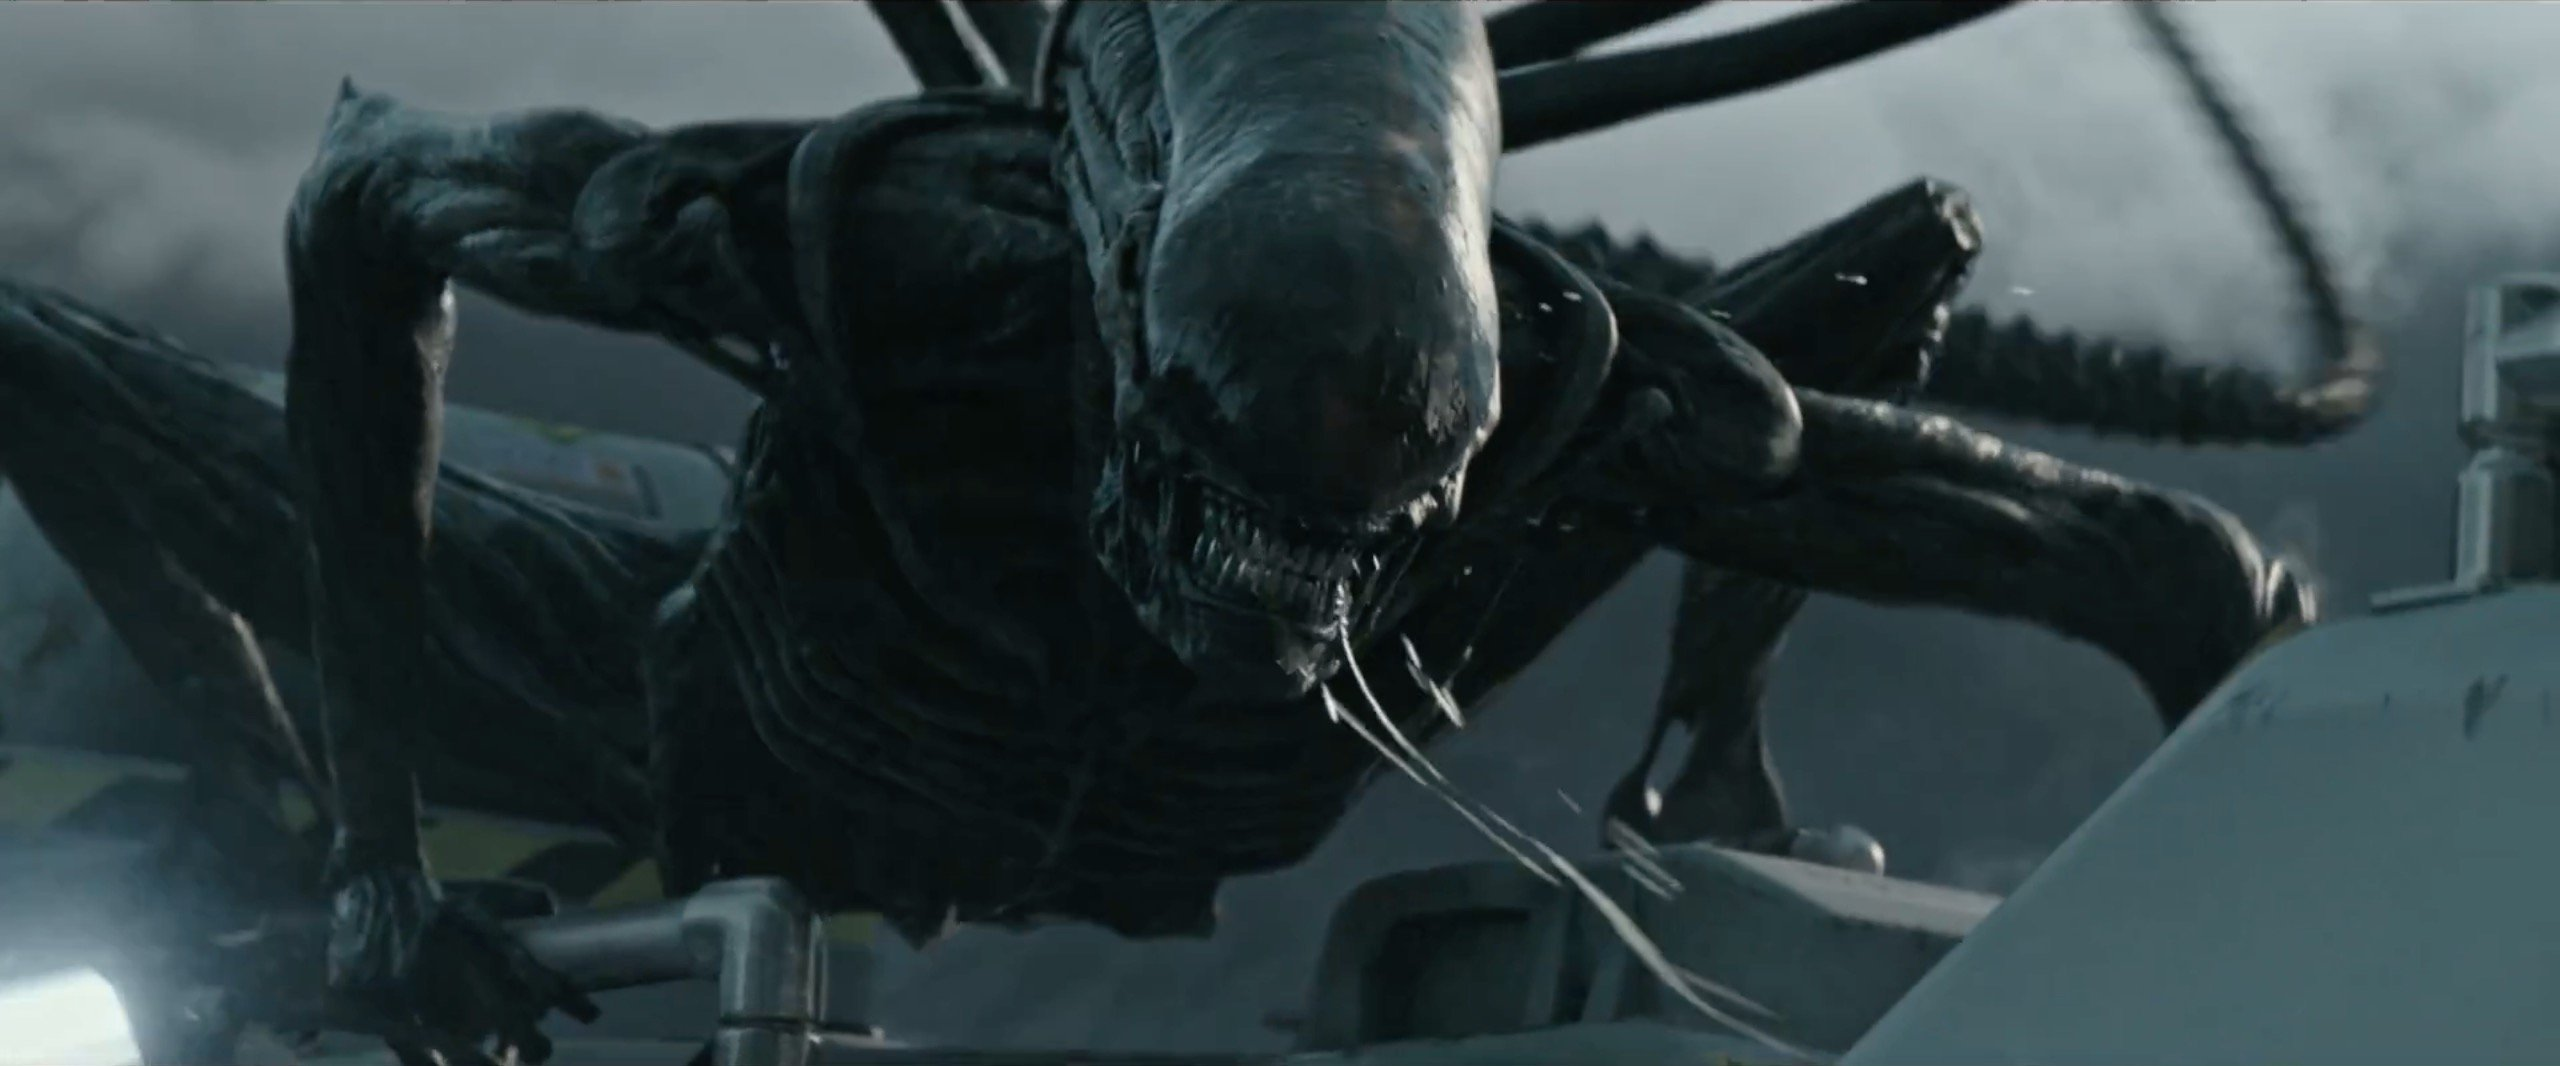 Alien : Covenant is pure garbage